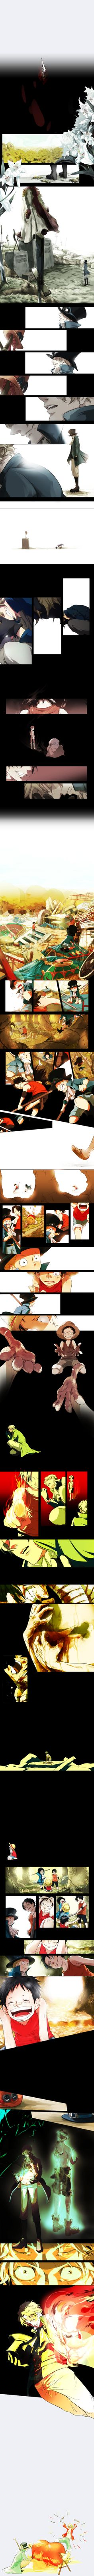 Sabo, Ace, and Luffy -one piece